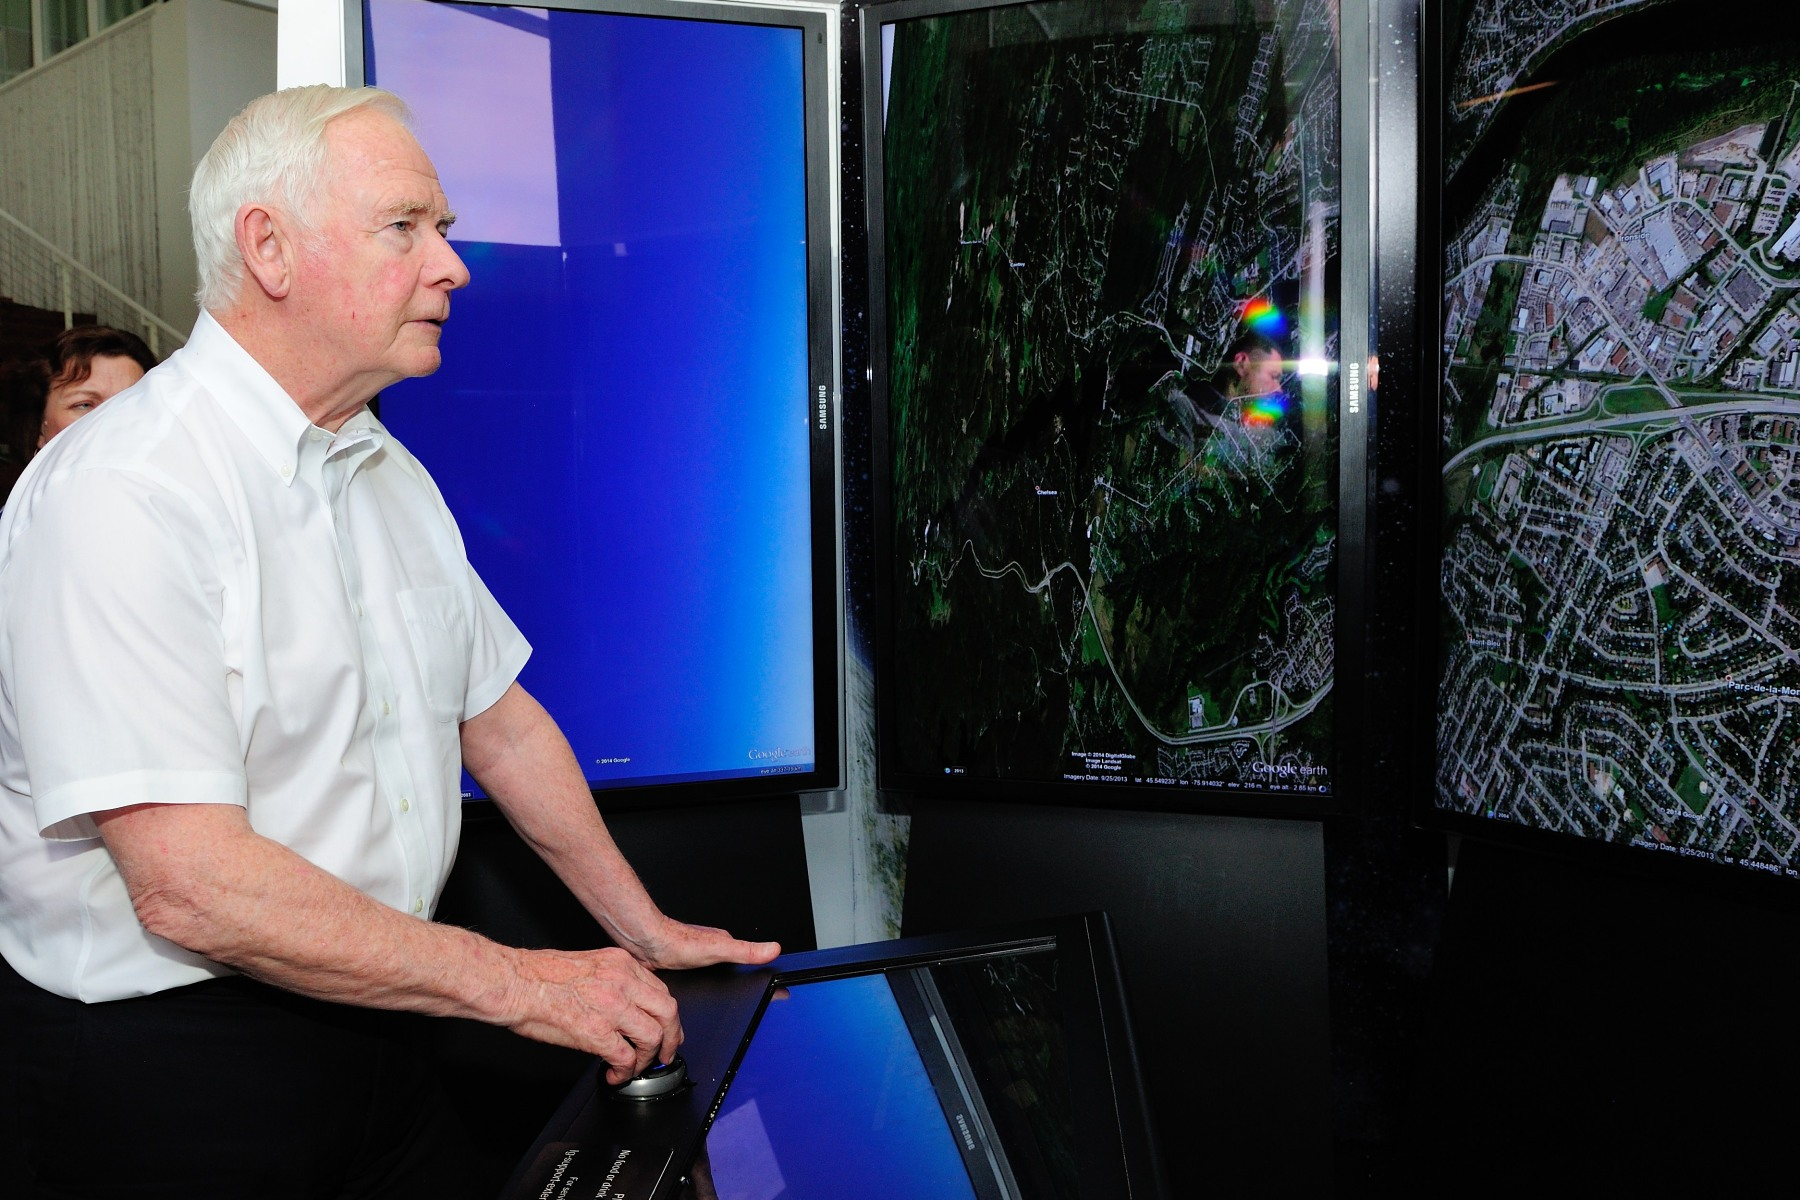 During the visit, His Excellency tried Google Earth, a virtual globe, map and geographical information program.